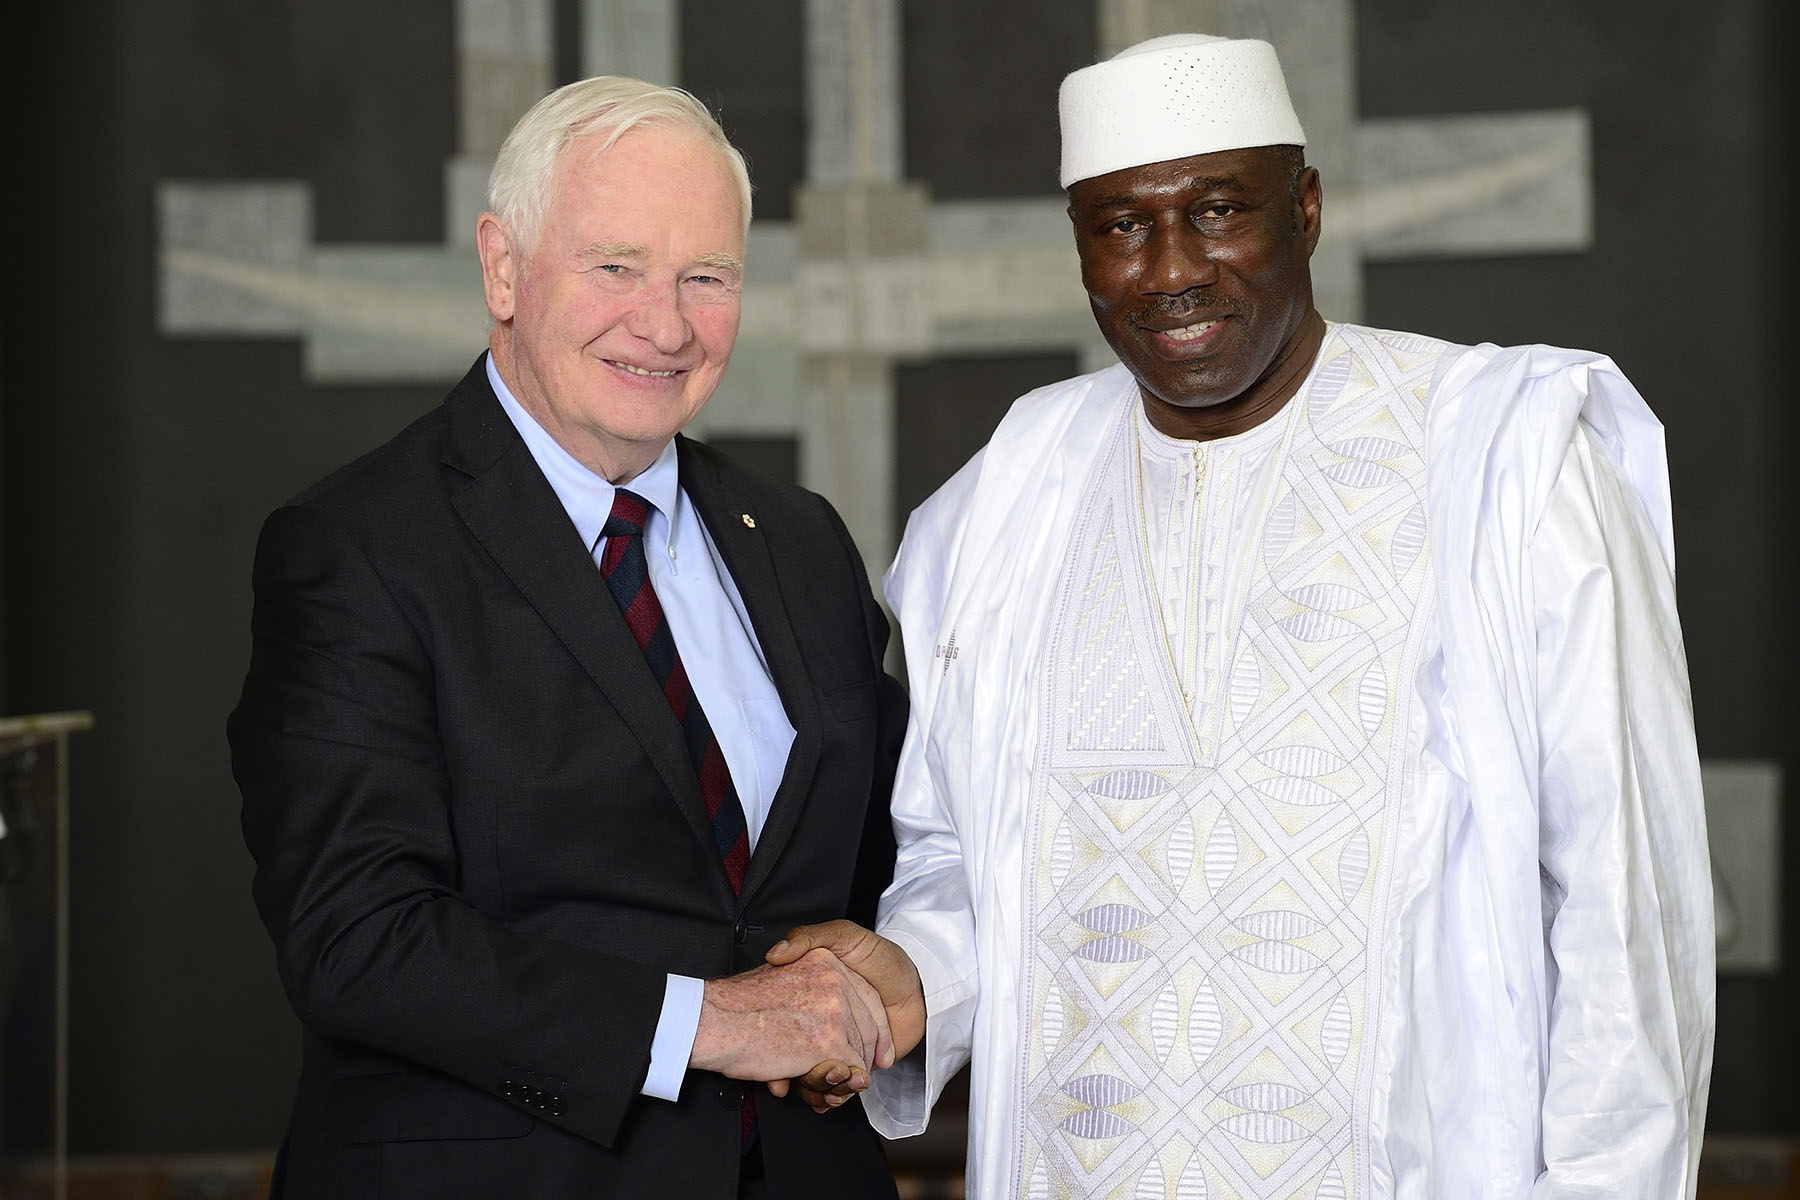 The Governor General also received the letters of credence of His Excellency Mahamadou Diarra, Ambassador of the Republic of Mali.